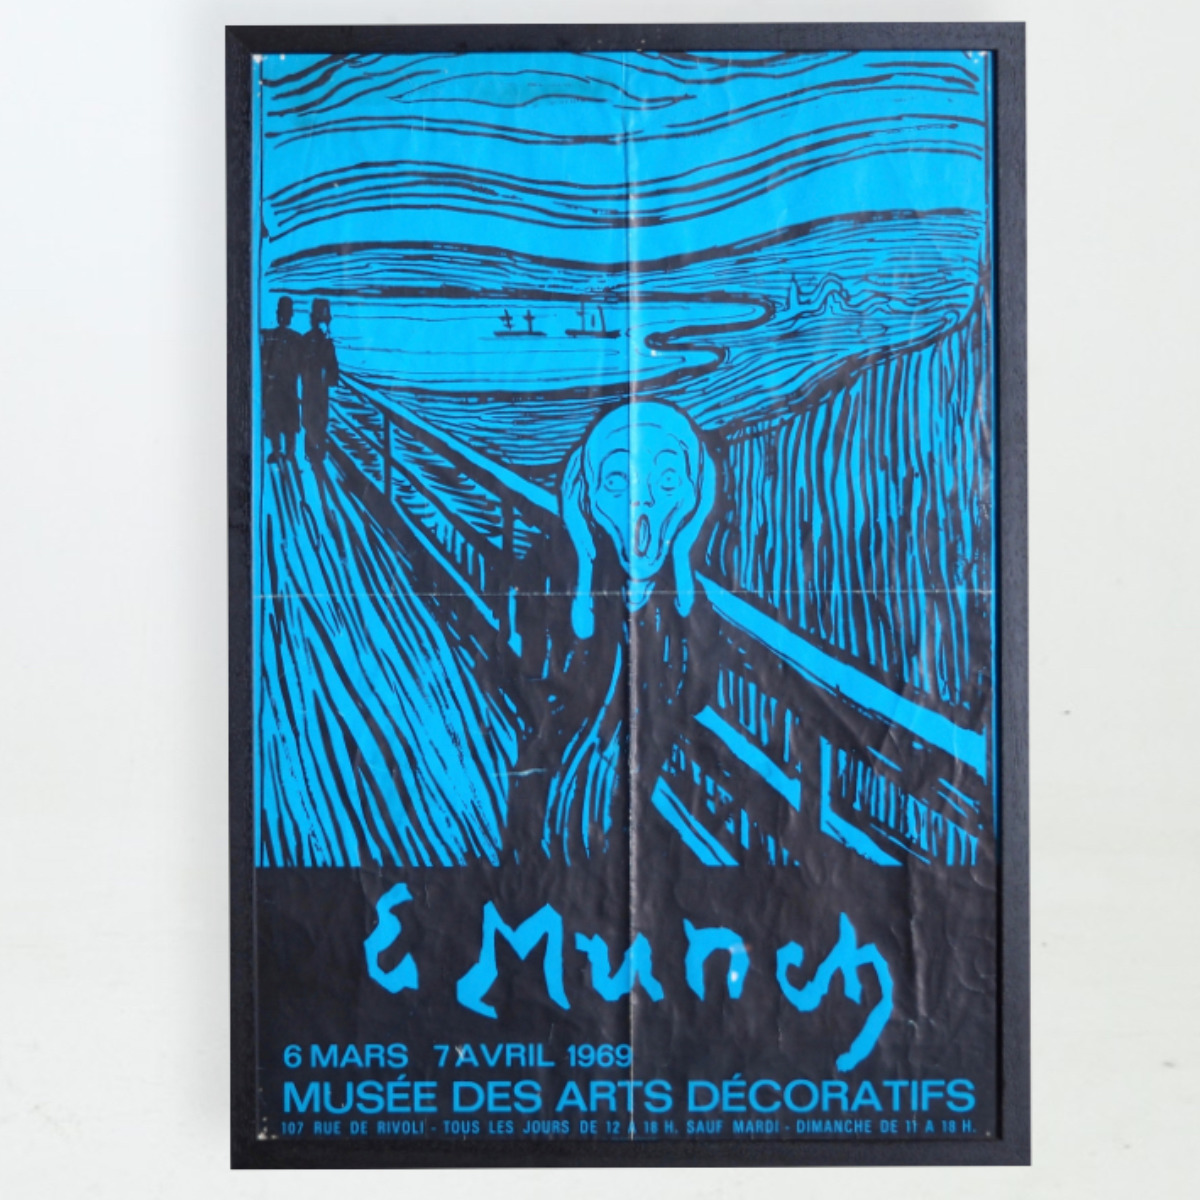 Rare poster. Edward Munch. 1969. - € 650